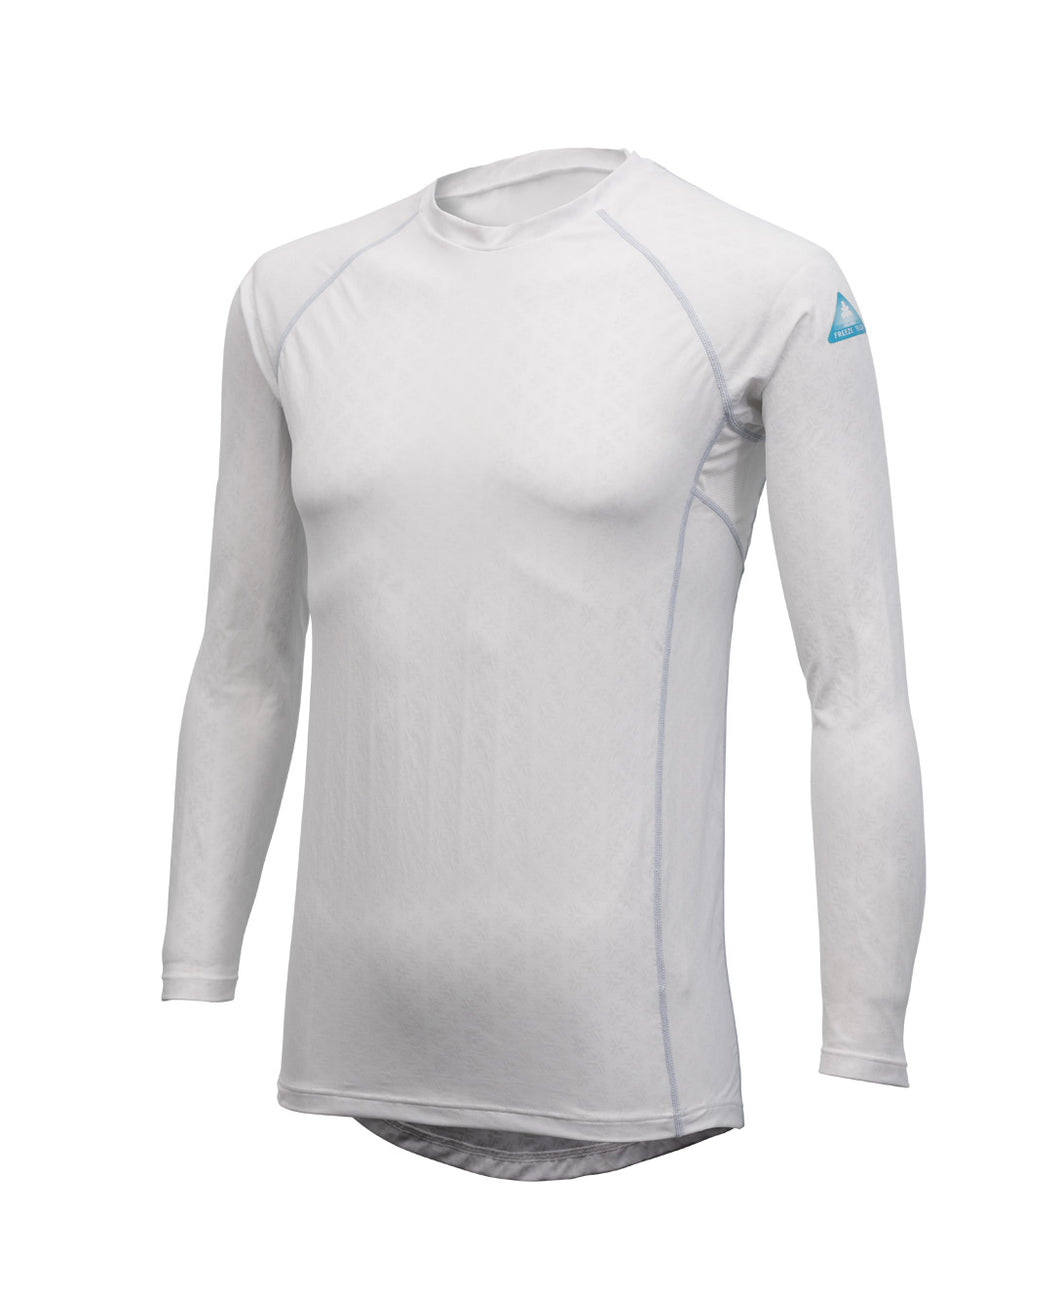 Freeze Tech Shirt, Long Sleeve, White- Sustained Cold Effect / Quick Dry / Antibacterial & Anti Odour / Anti UV